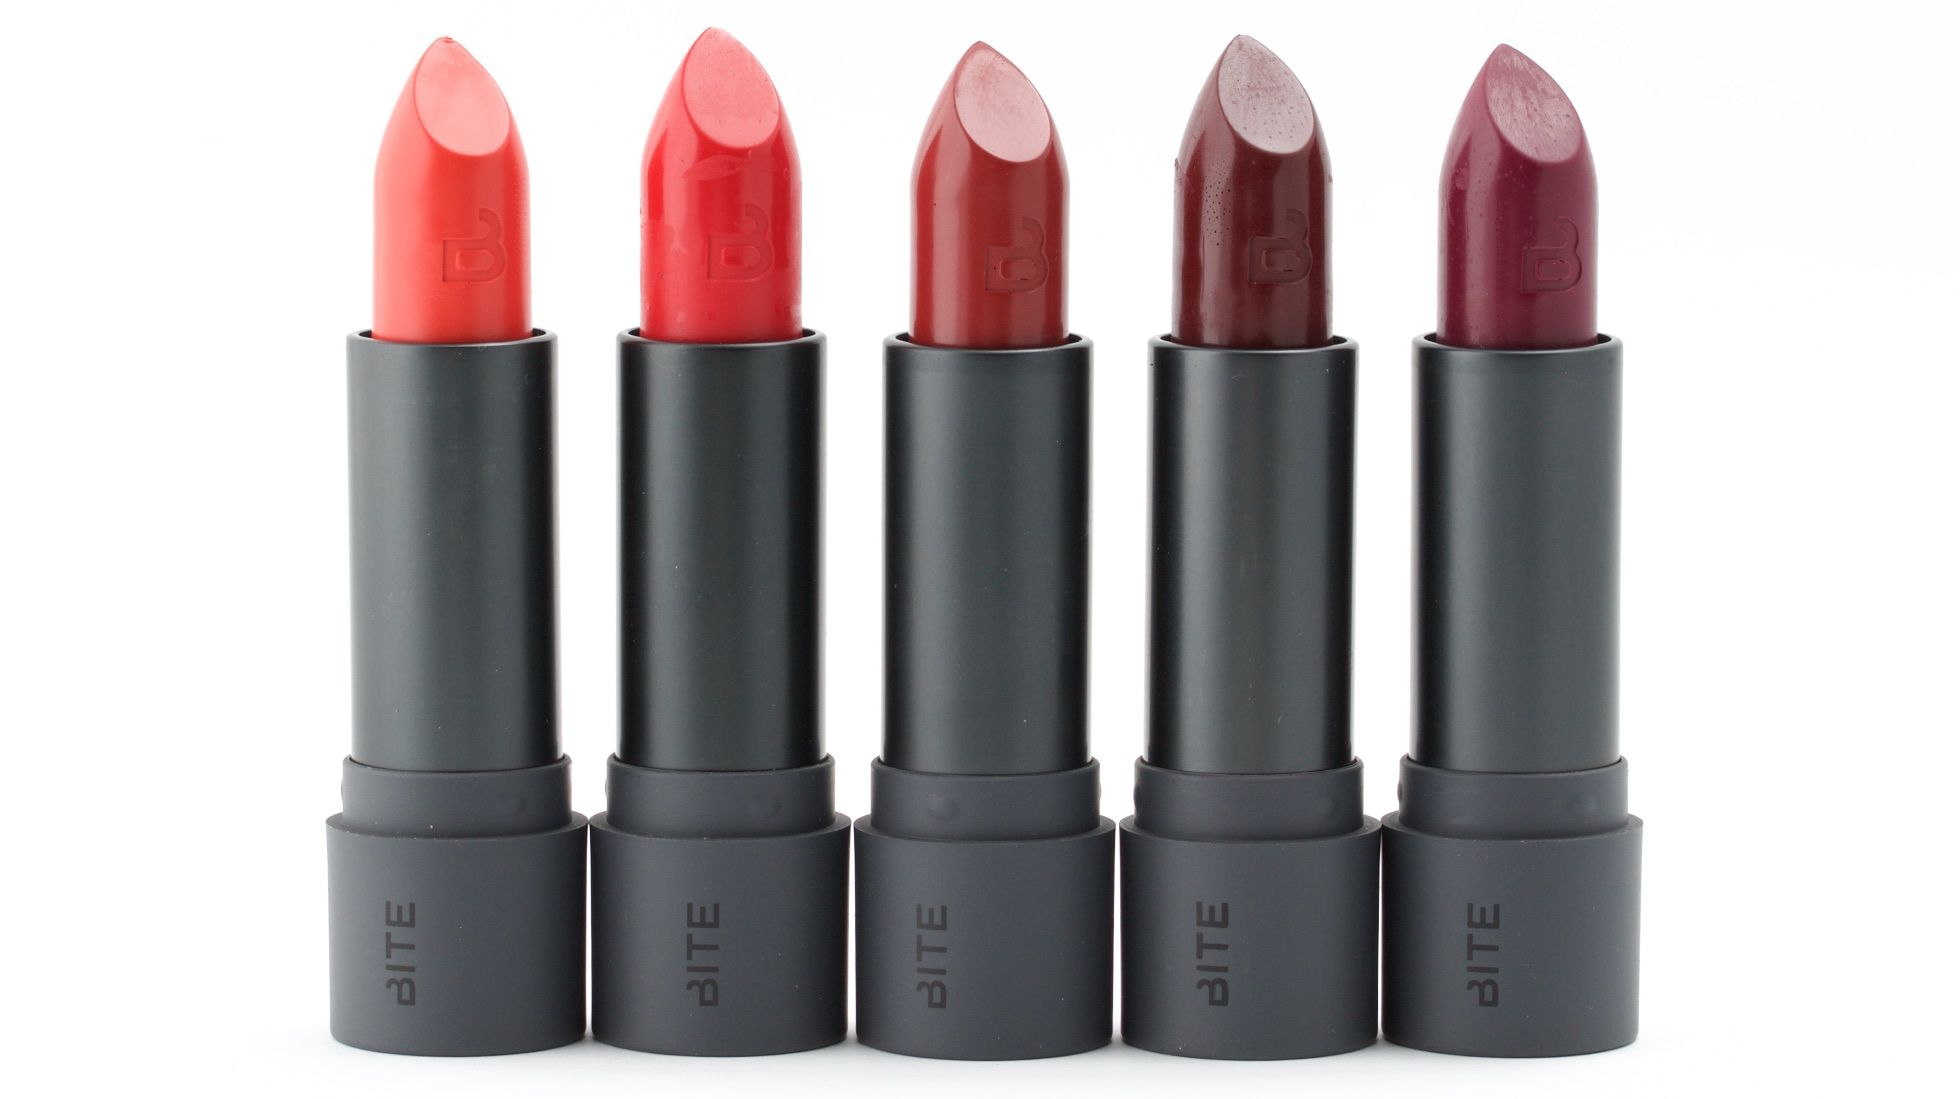 Bite Beauty Celebrates Their Heritage with Canadian Maple